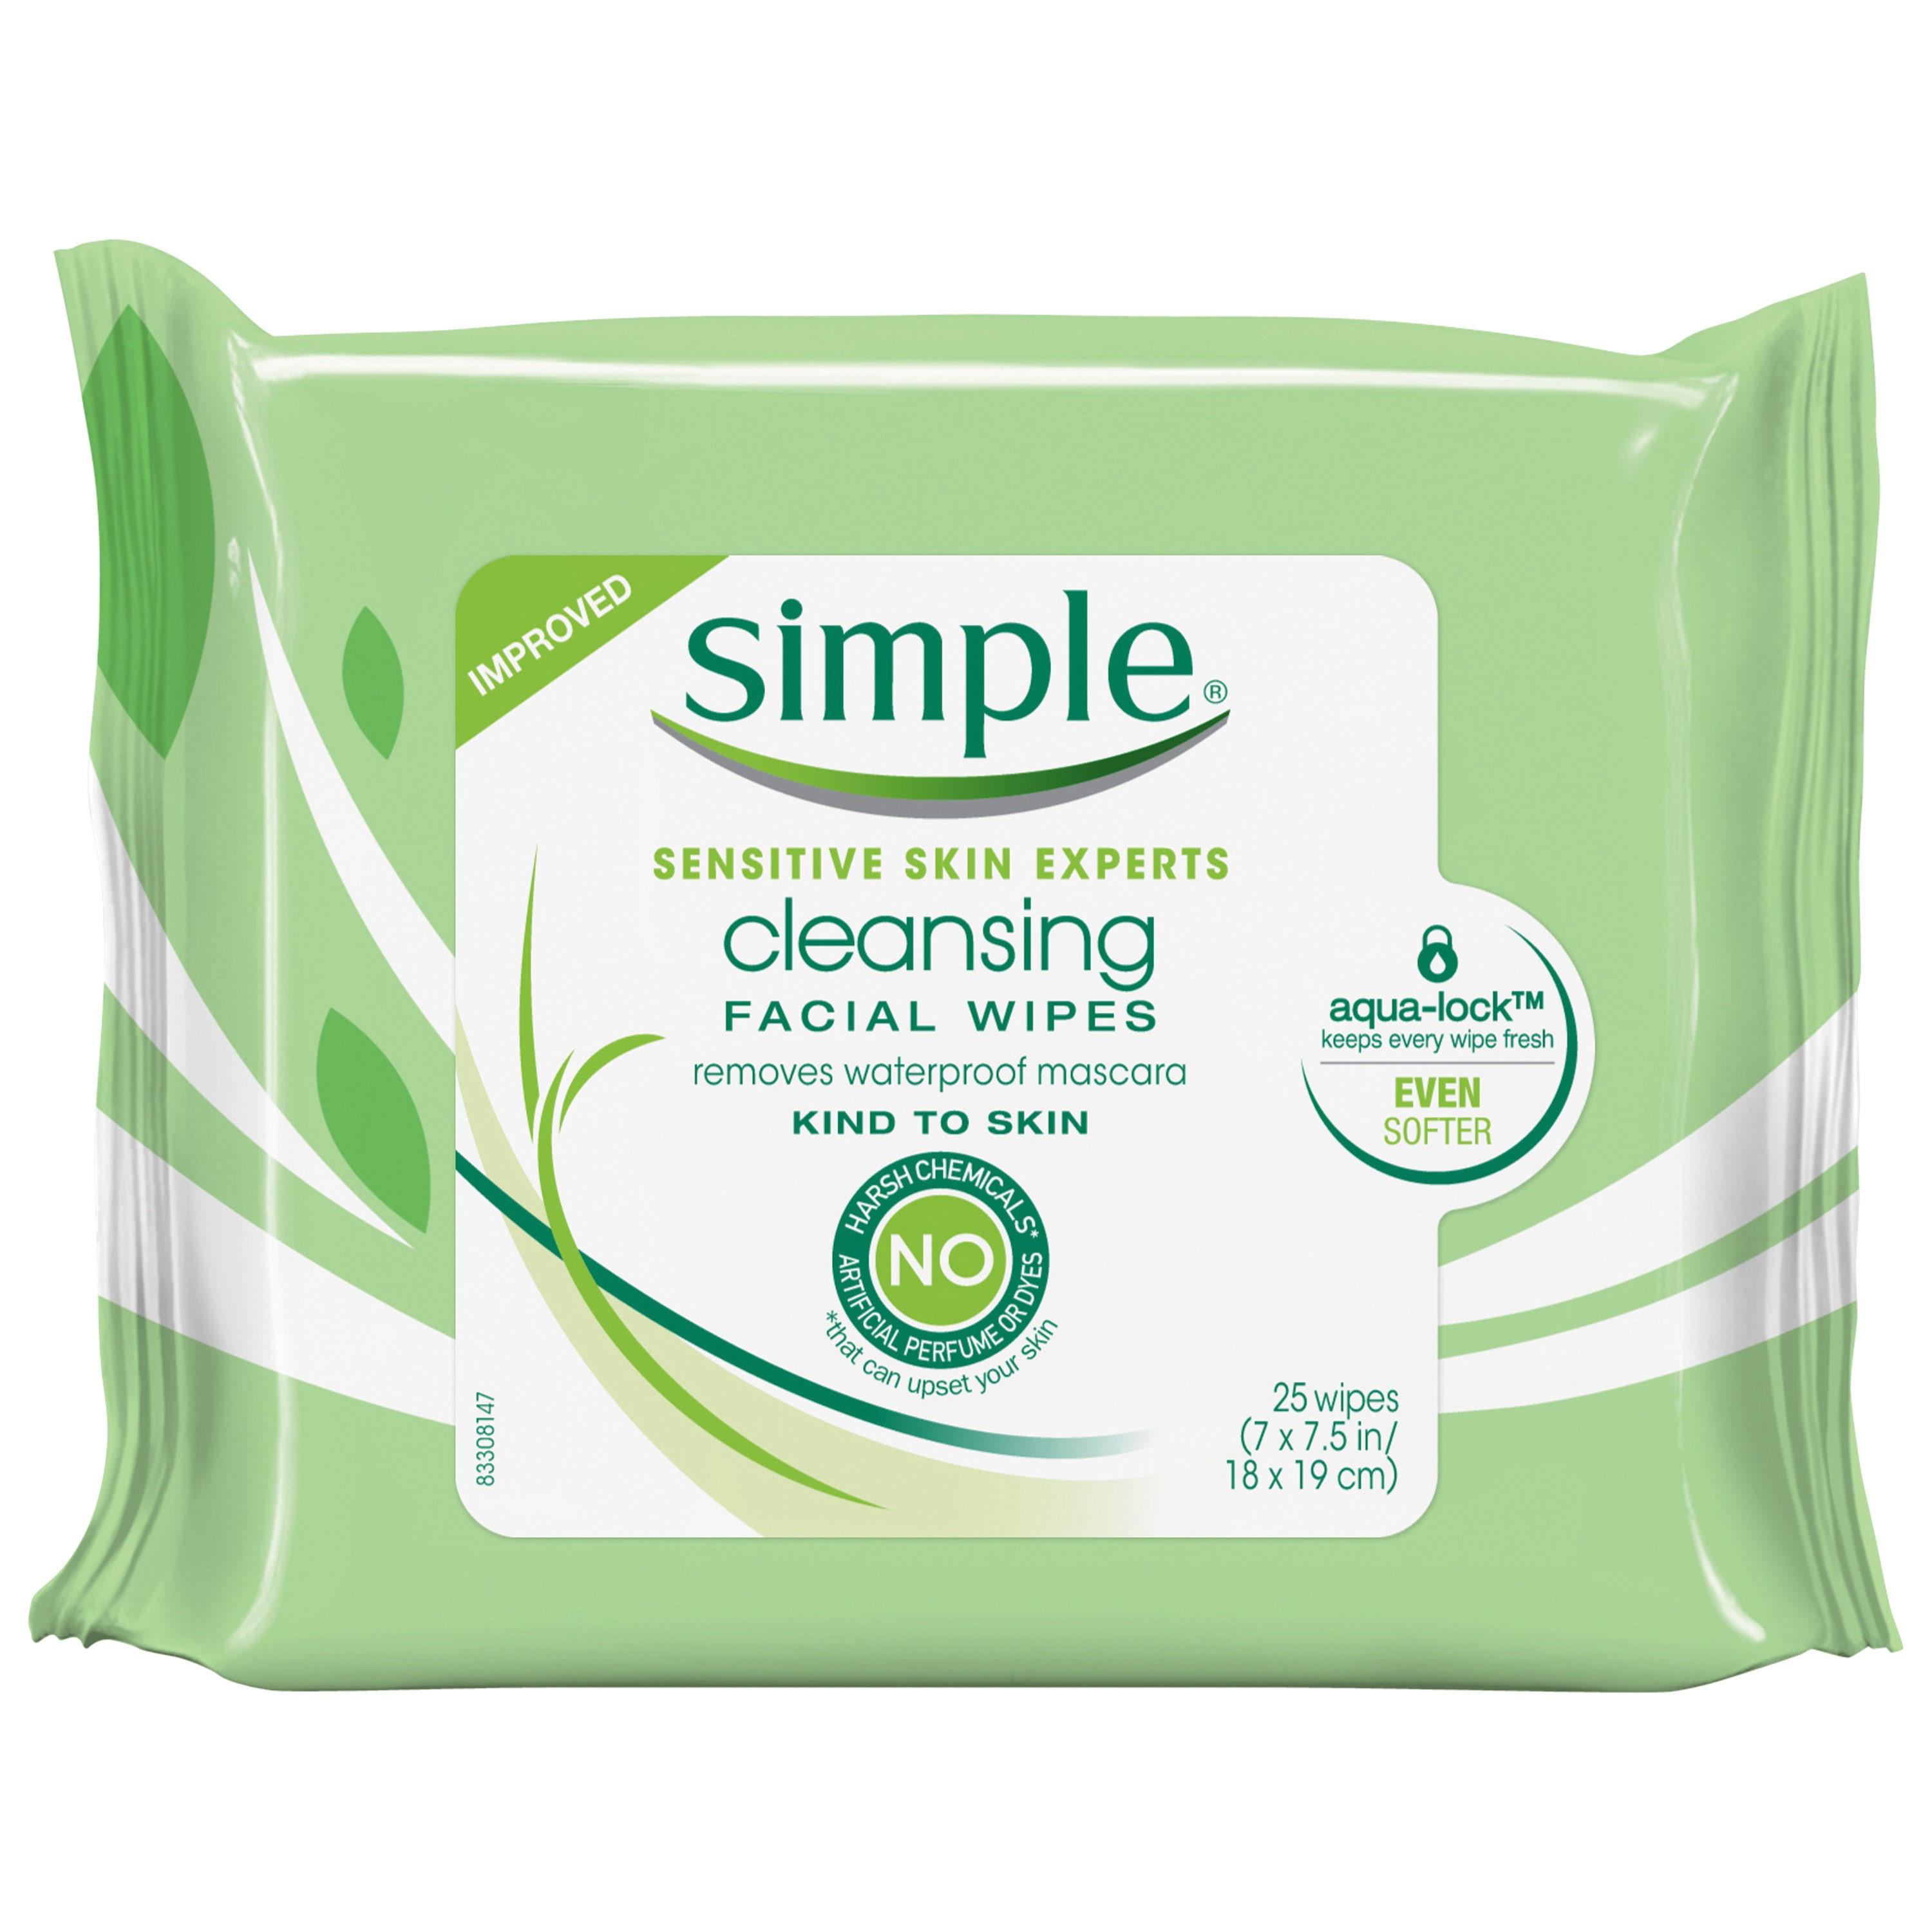 Medline Aloetouch Sensitive Cleansing Wipes, Scented, Case of 1200 LANCOME by Lancome